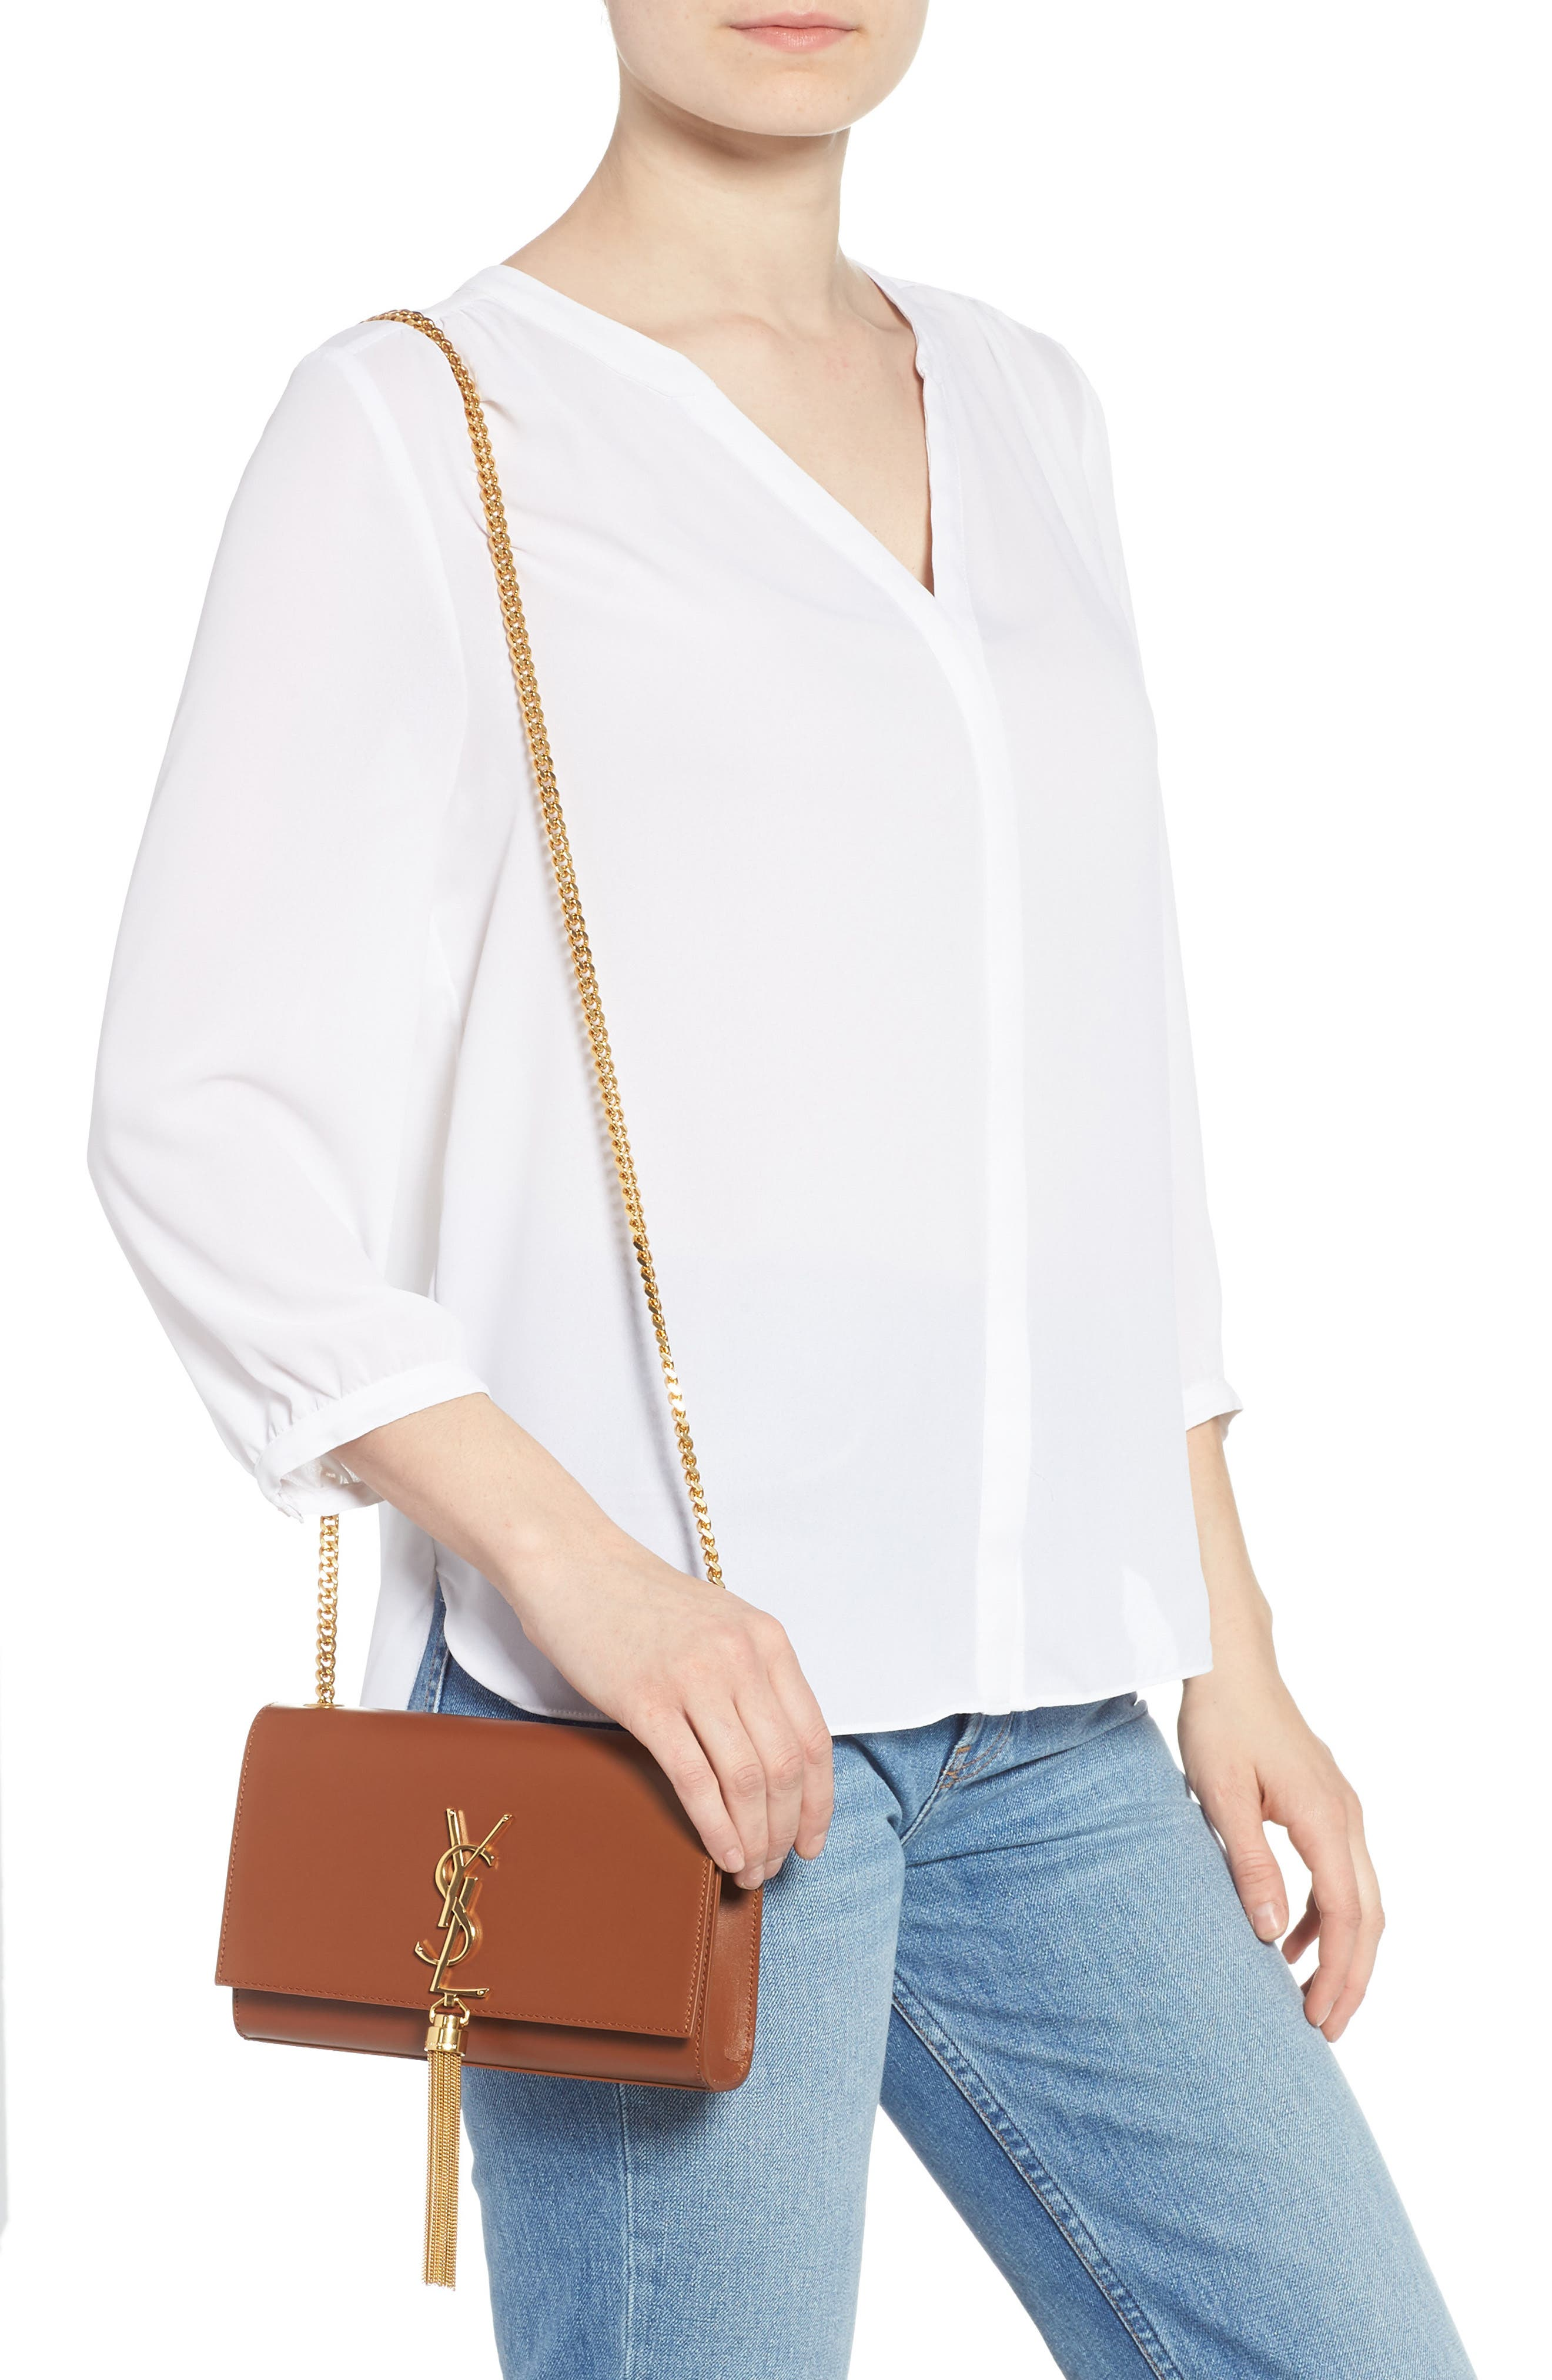 Kate Tassel Calfskin Leather Shoulder Bag,                             Alternate thumbnail 3, color,                             FAUVE